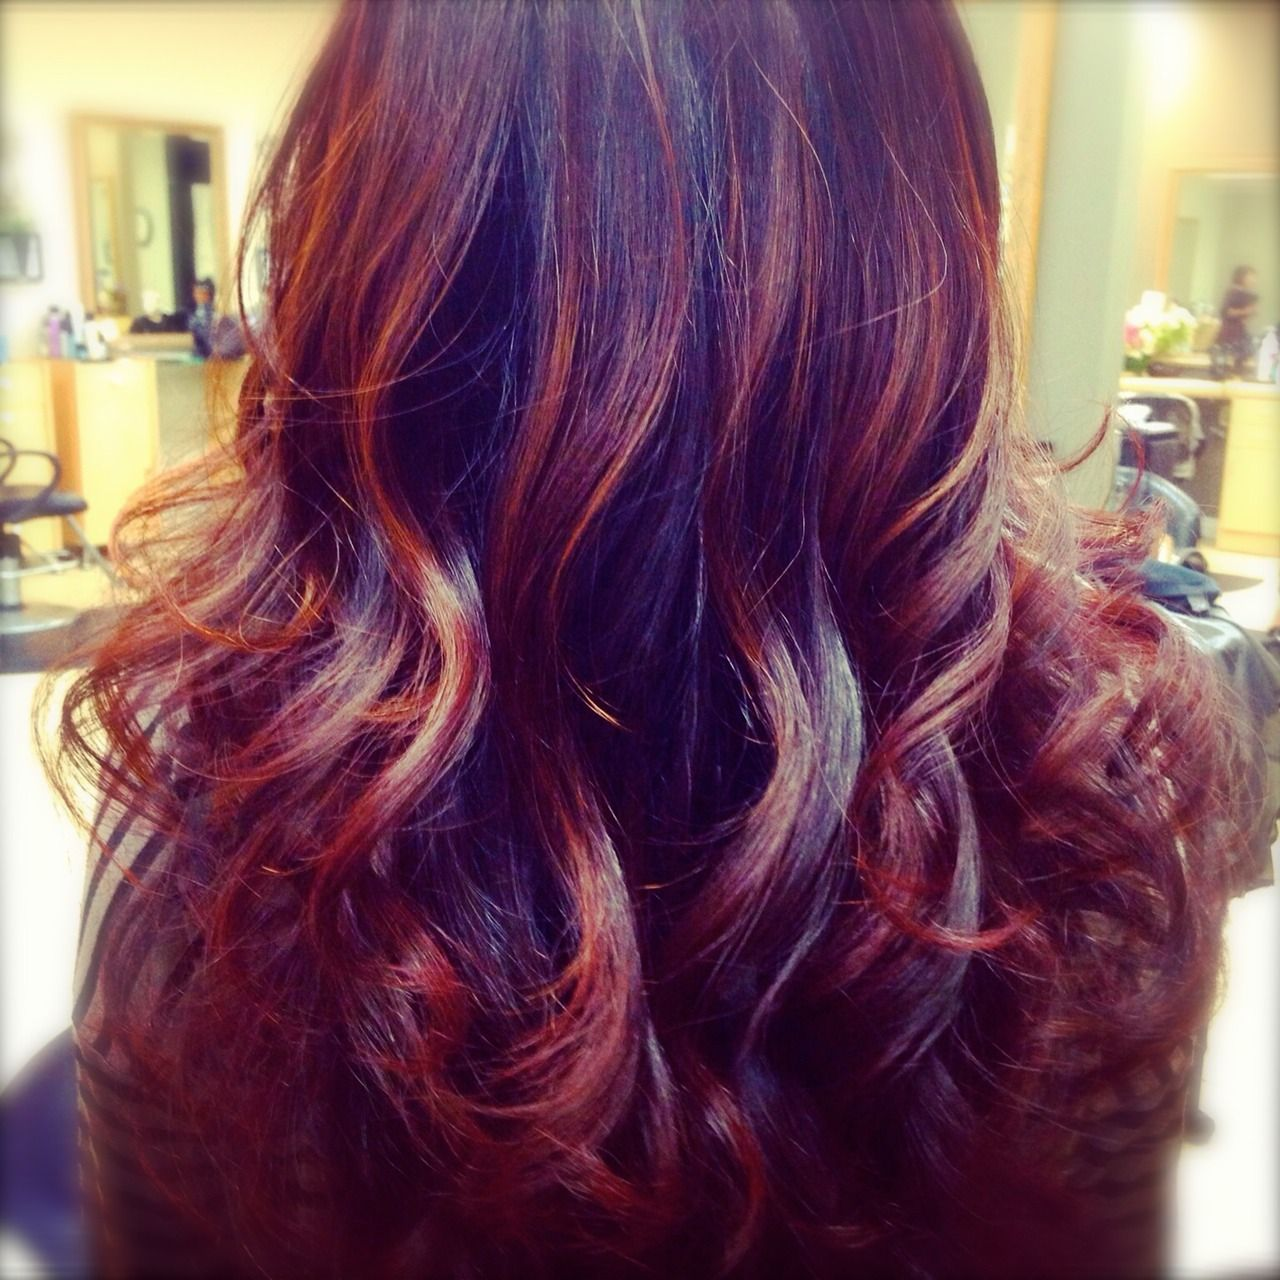 Img8042 hair pinterest best hair coloring and copper hair ideas find this pin and more on hair solutioingenieria Image collections